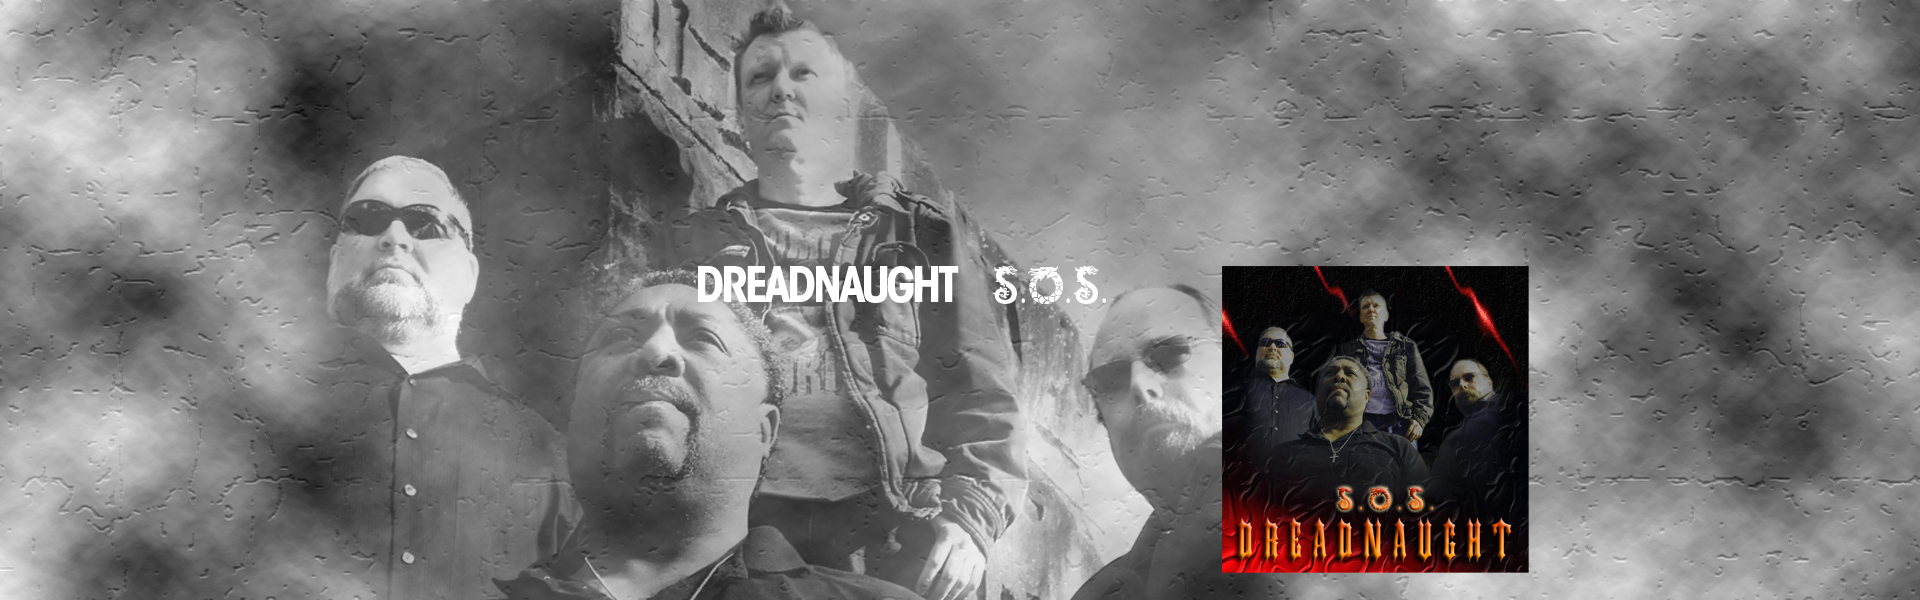 sos by dreadnaught